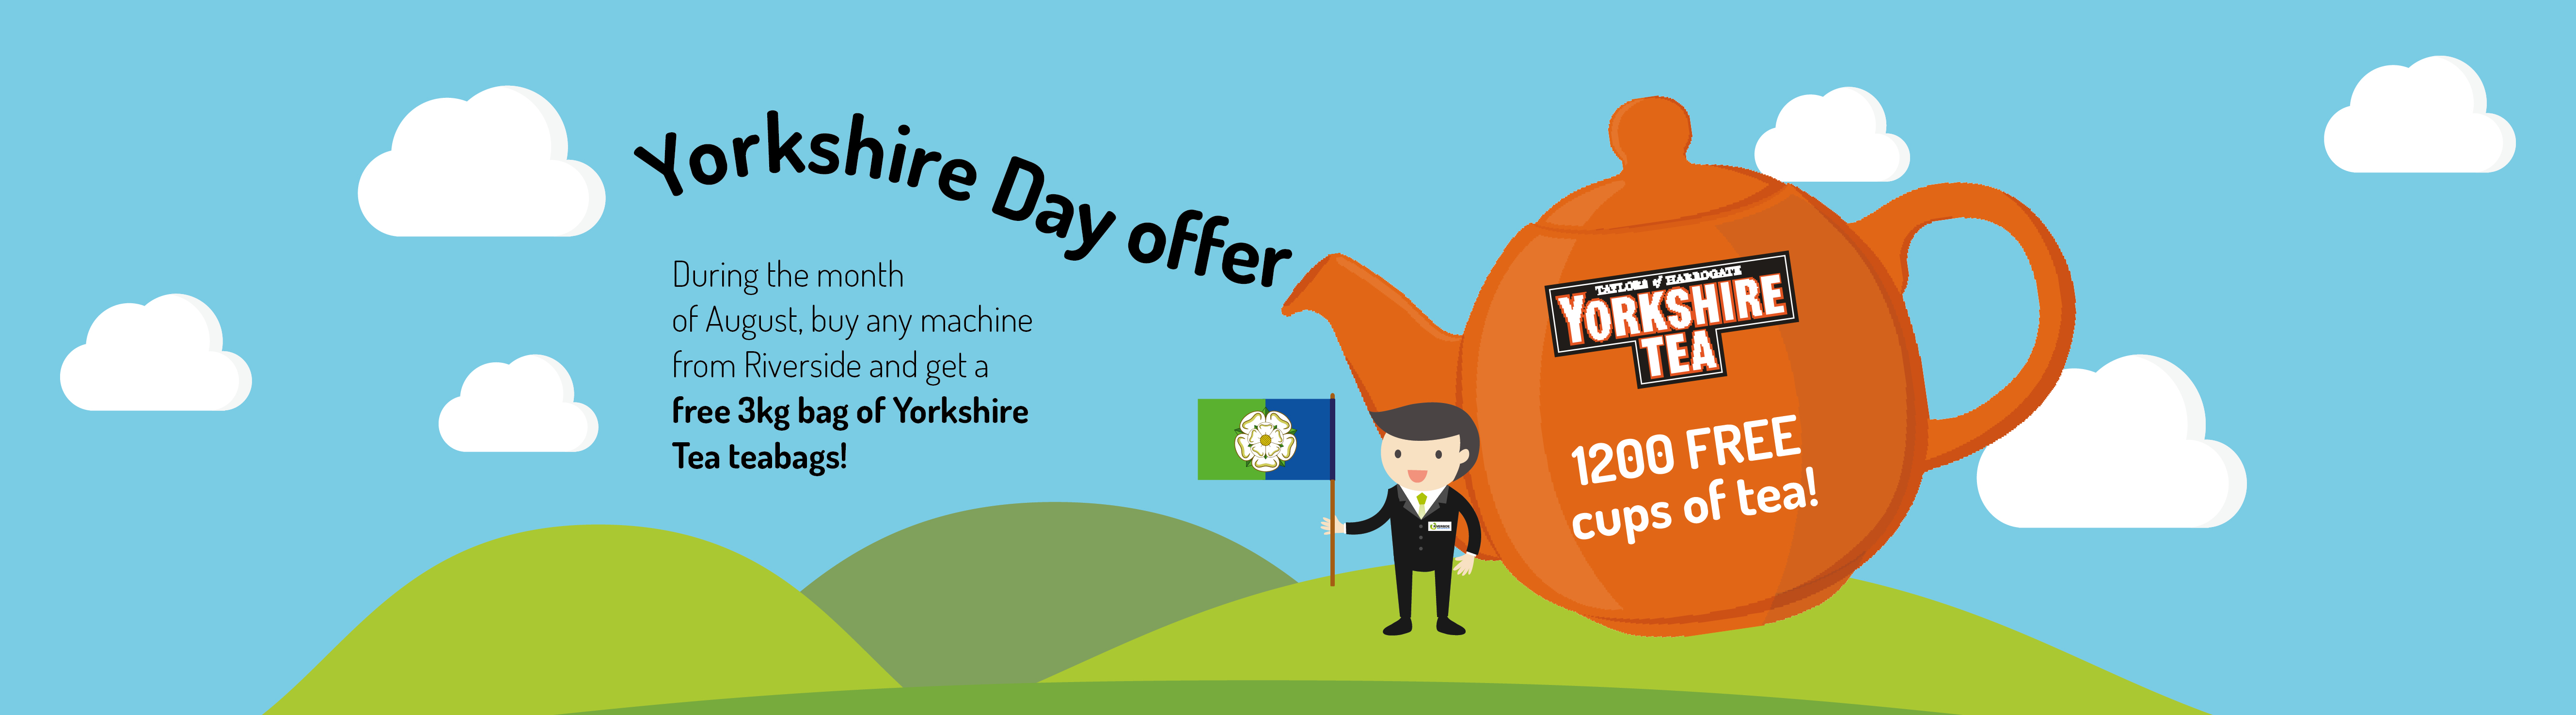 Fancy a brew? Free Yorkshire Tea on offer during August!